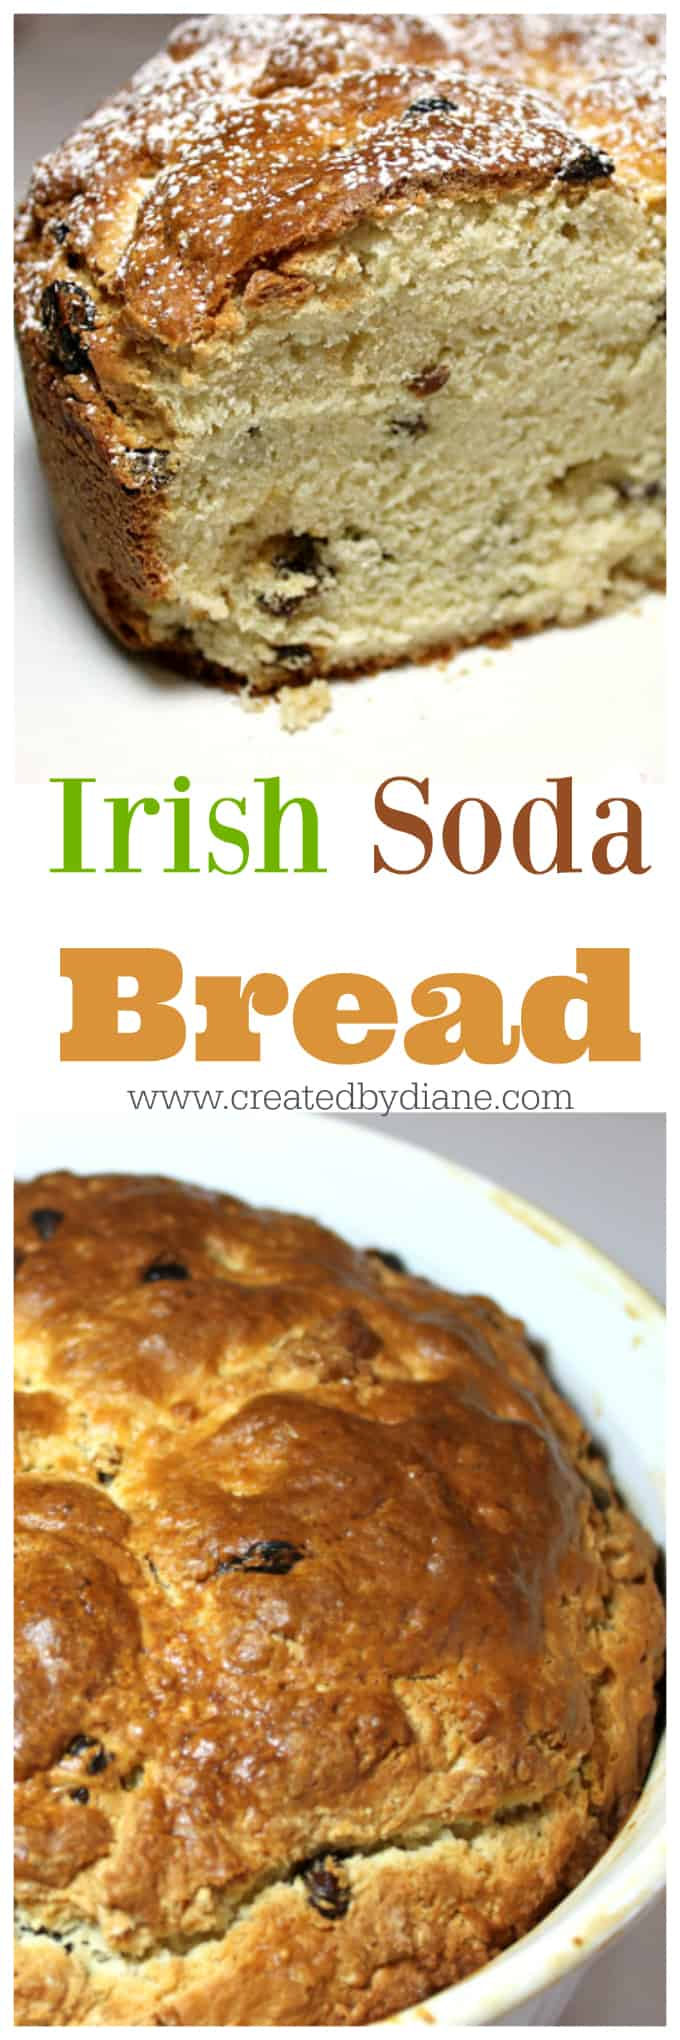 Irish Soda Bread easy recipe from www.createdbydiane.com